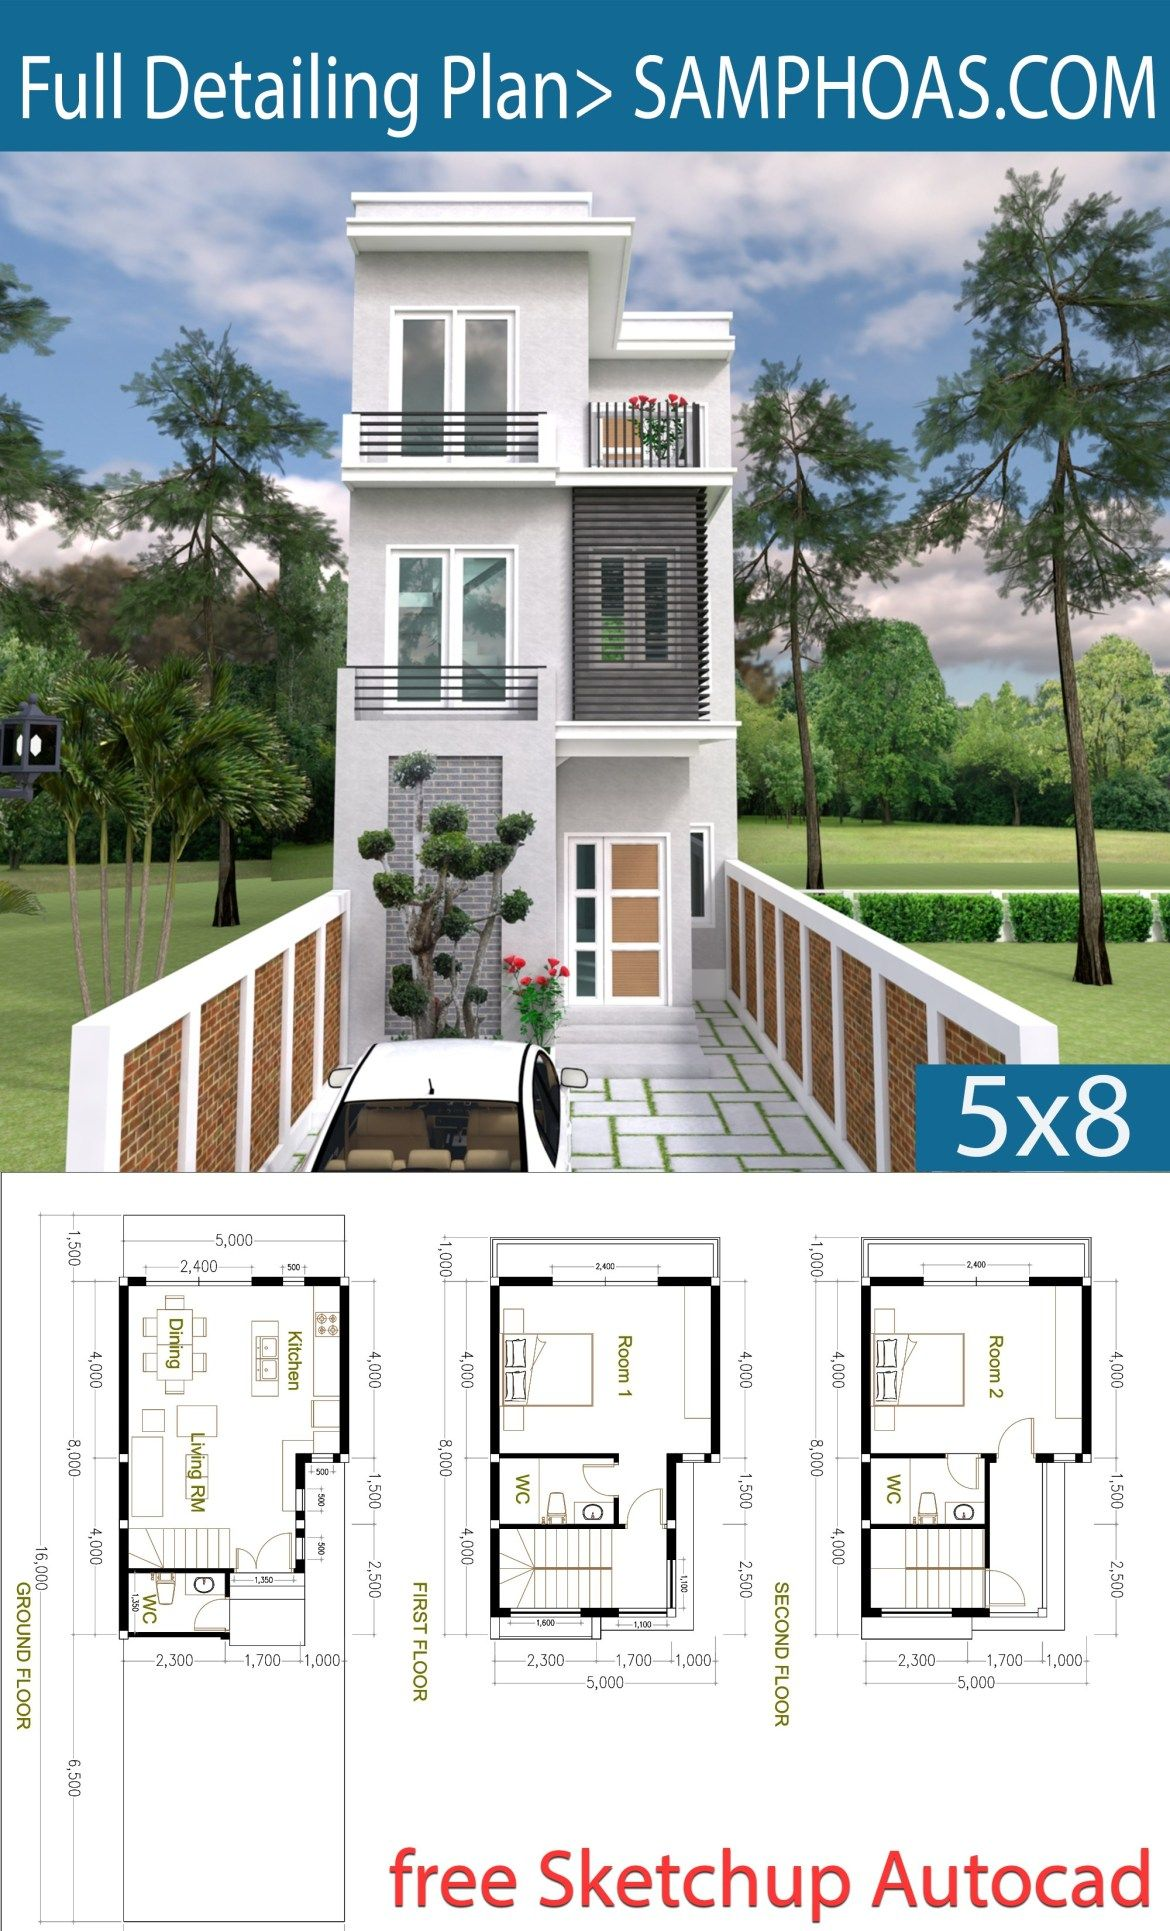 2 bedroom tiny home plan 5x8m architecture house plans tiny rh pinterest com